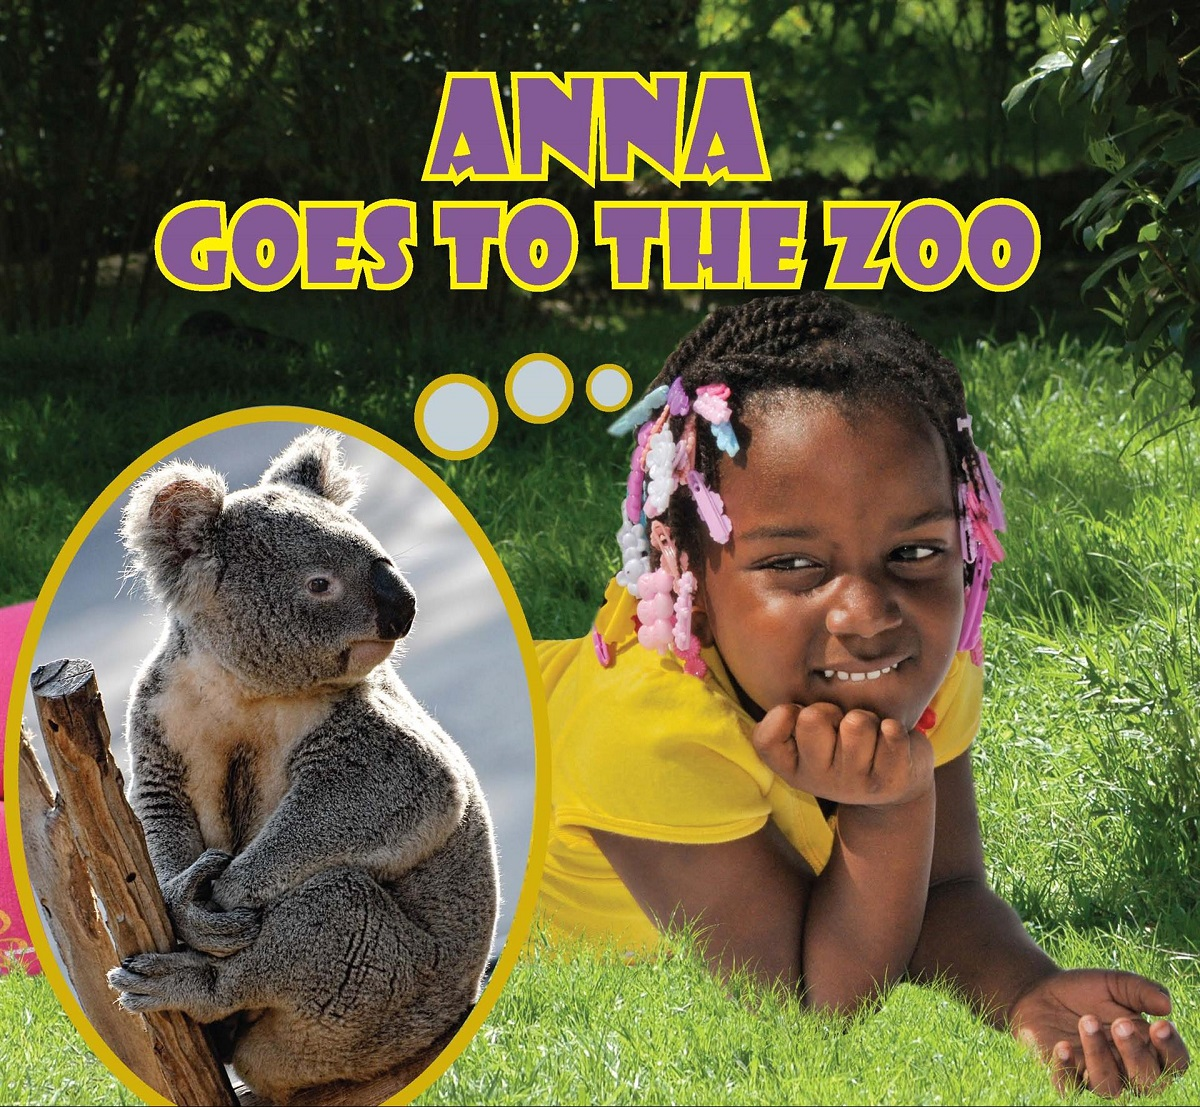 Anna goes to the zoo